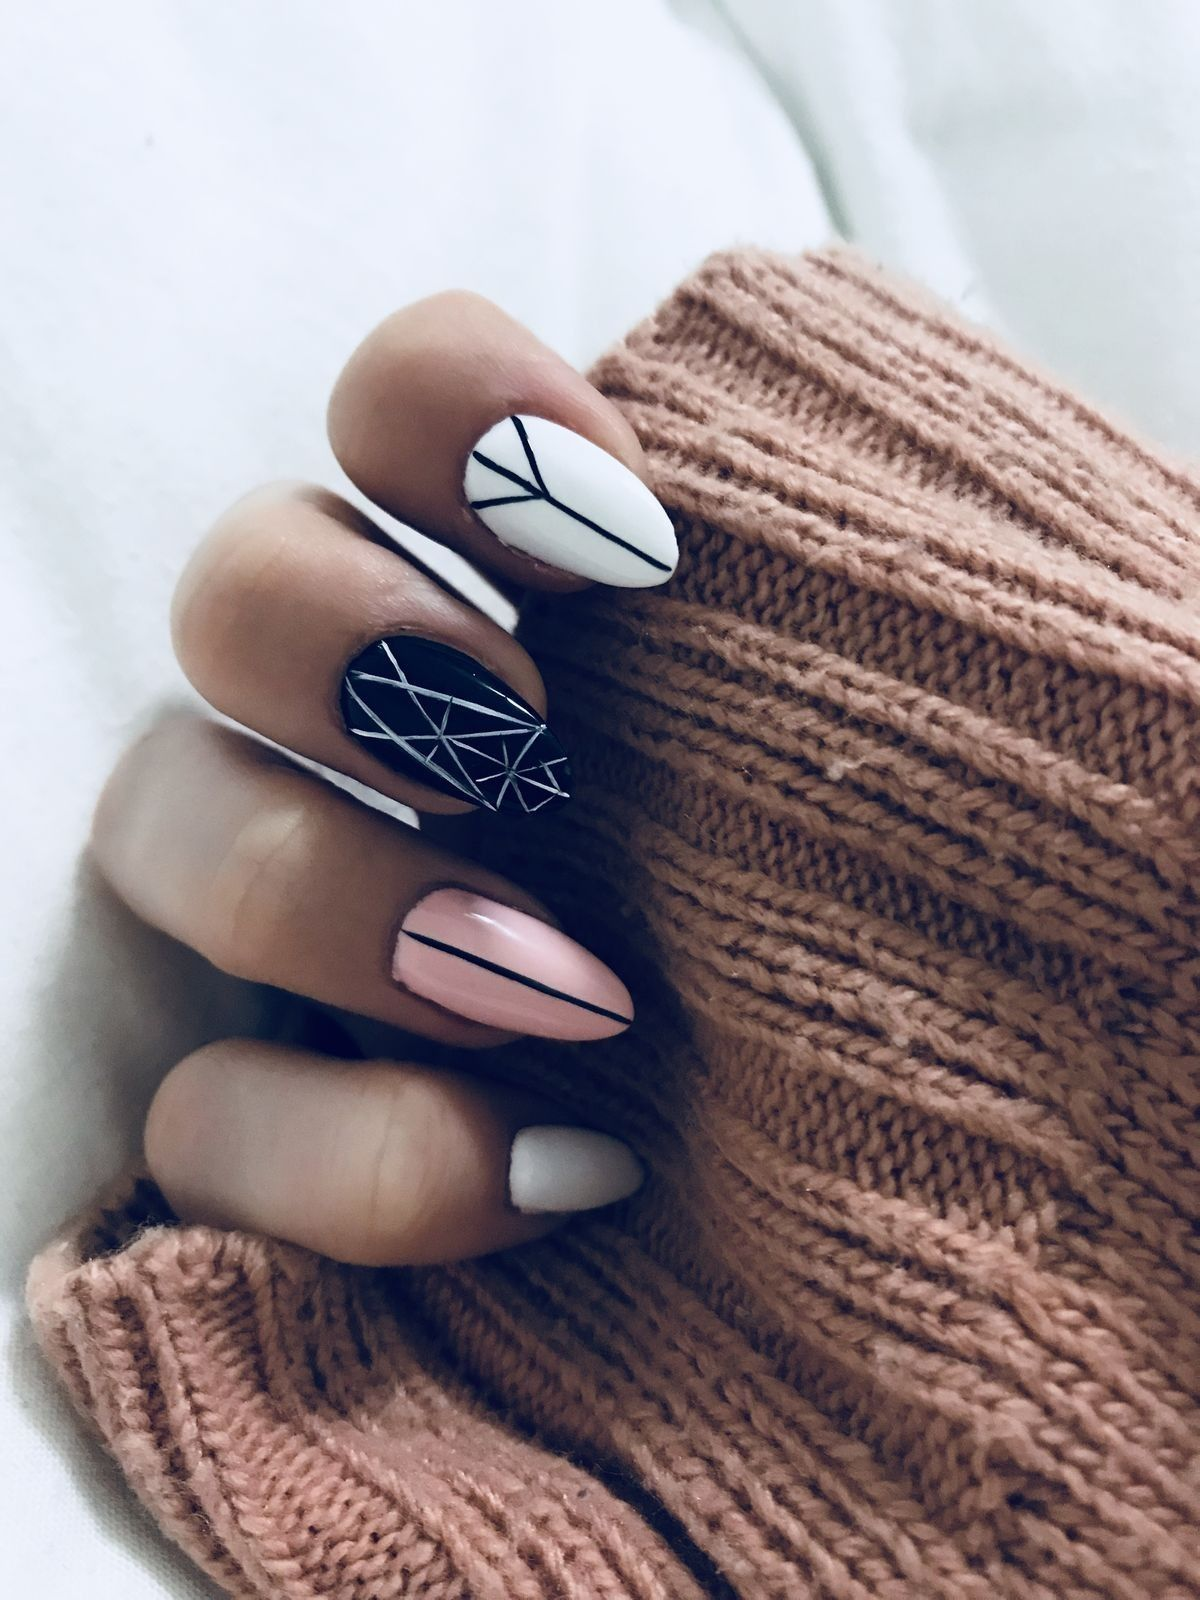 Pin by Nagy Mária on Nails <3 | Pinterest | Manicure, Makeup and ...